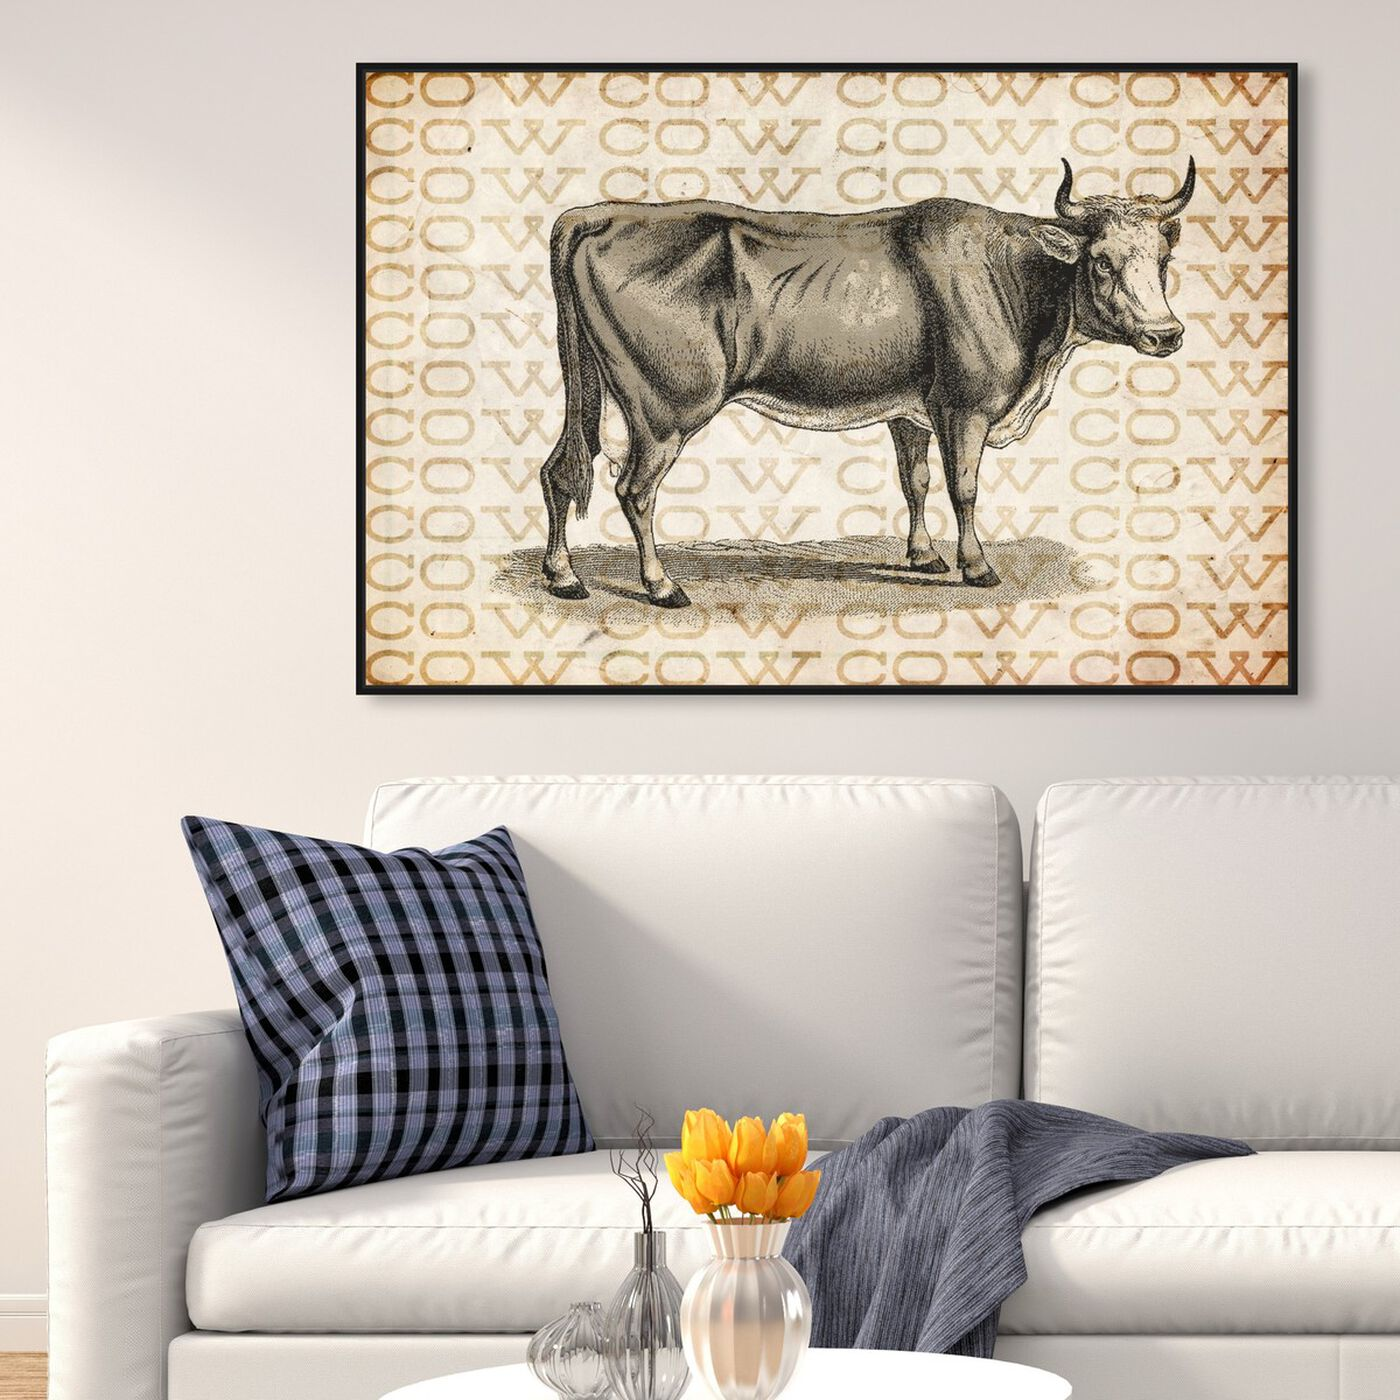 Hanging view of Cow featuring animals and farm animals art.